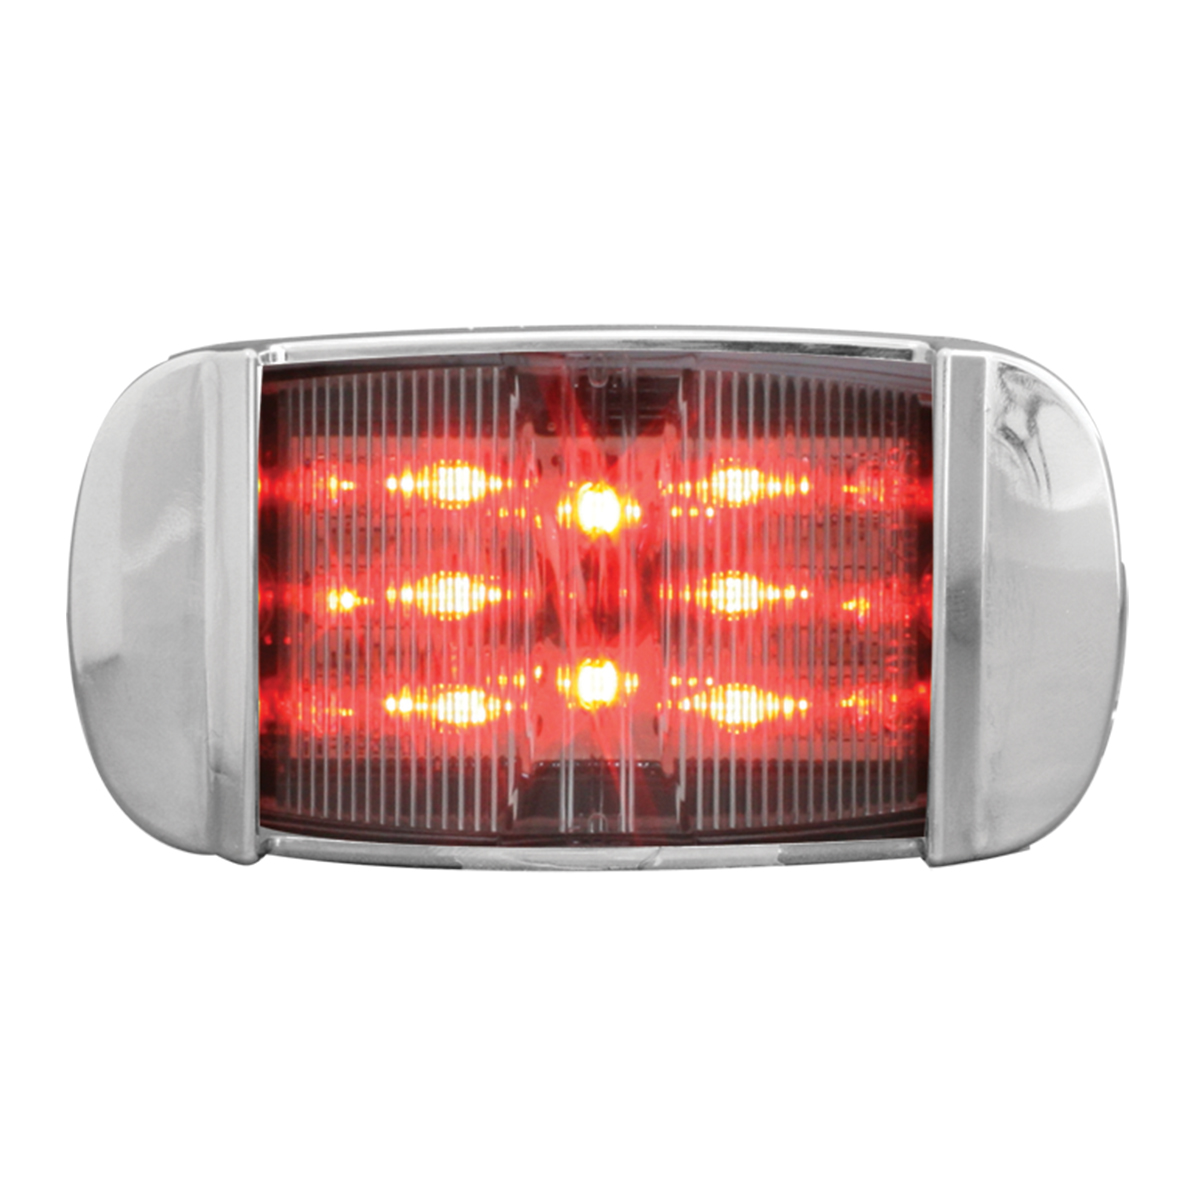 76257 Rectangular Camel Back Wide Angle LED Marker Light w/ Chrome Bezel